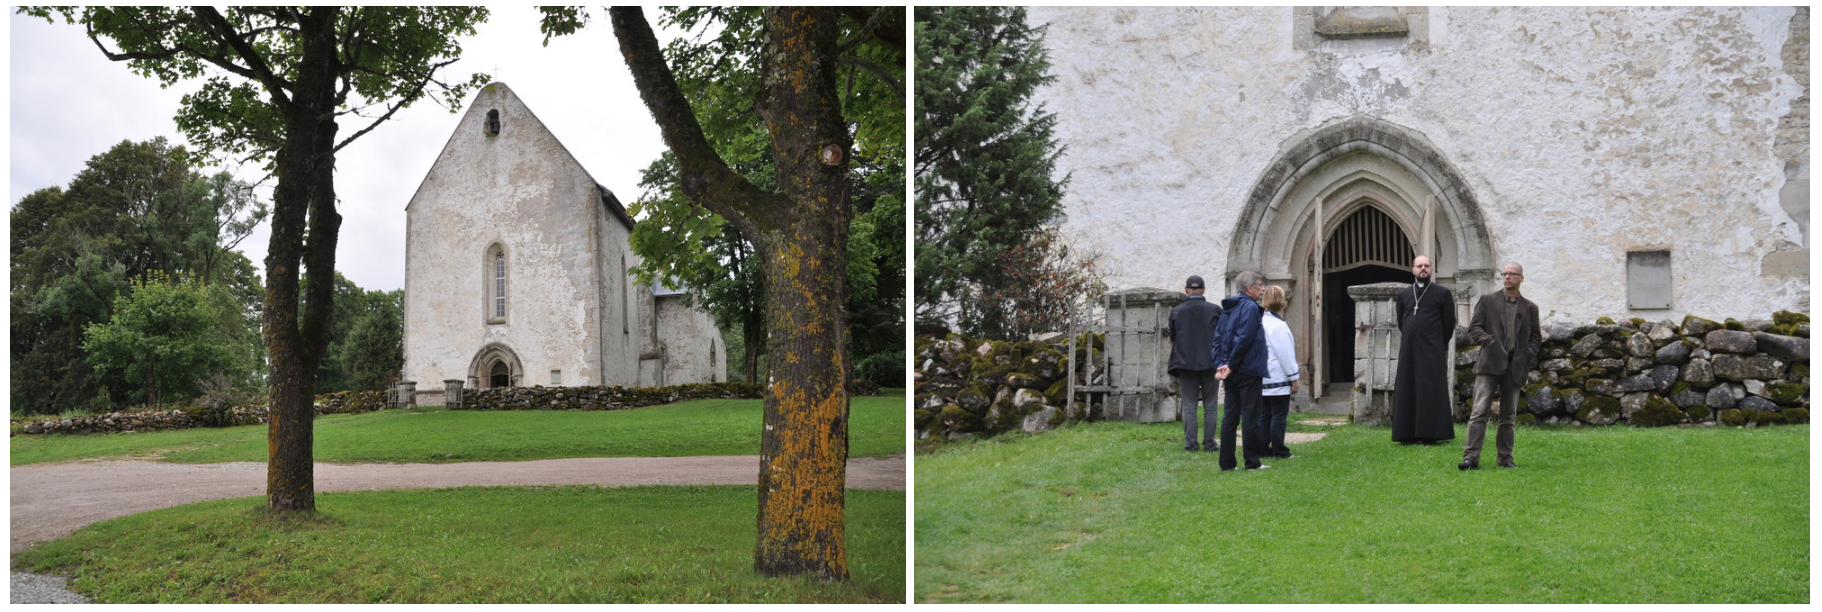 Saaremaa's smallest church, Karja, is dedicated to St. Catherine and St. Nicholas. Photos: Meg Pier